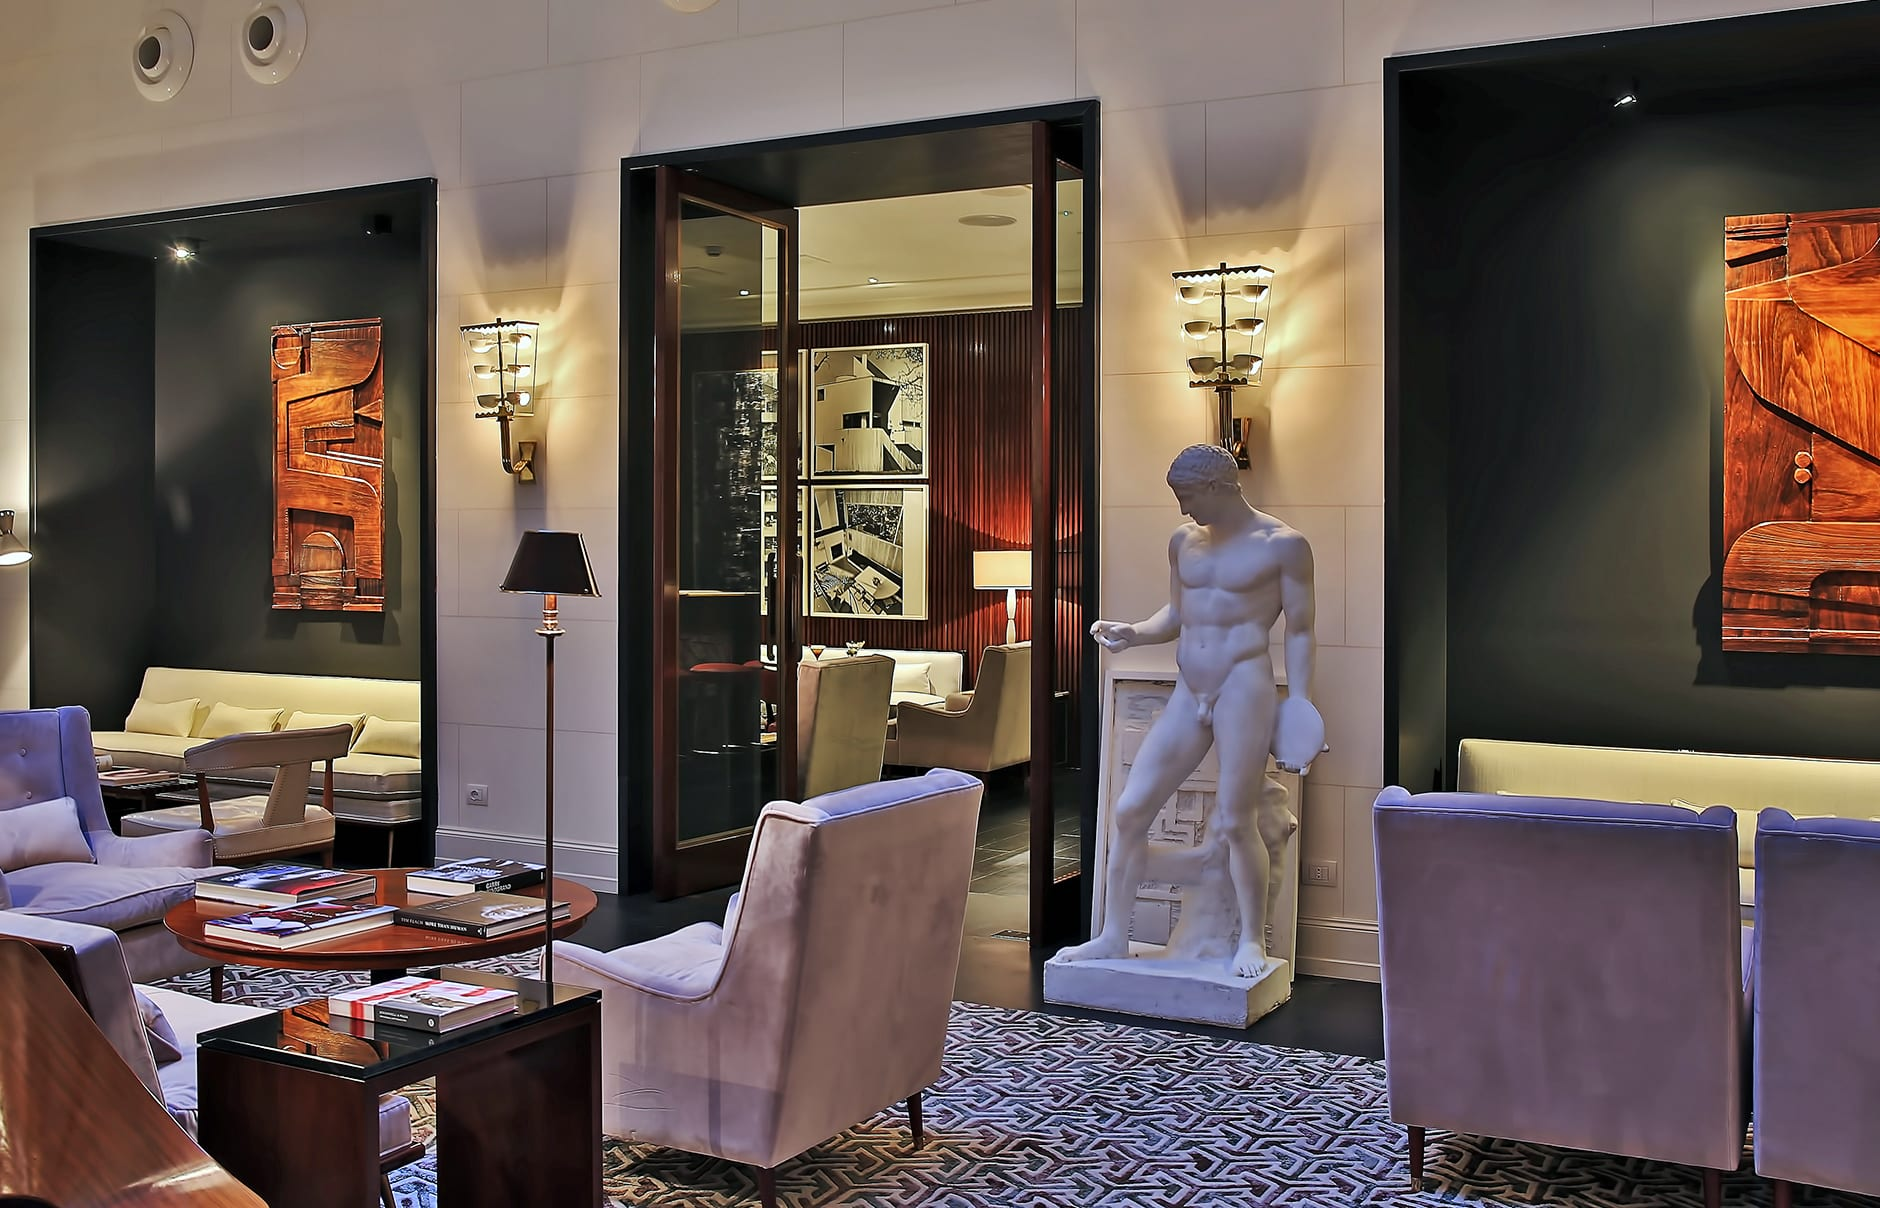 J.K. Place Roma, Rome, Italy. Hotel Review by TravelPlusStyle. Photo © J.K. Place Roma